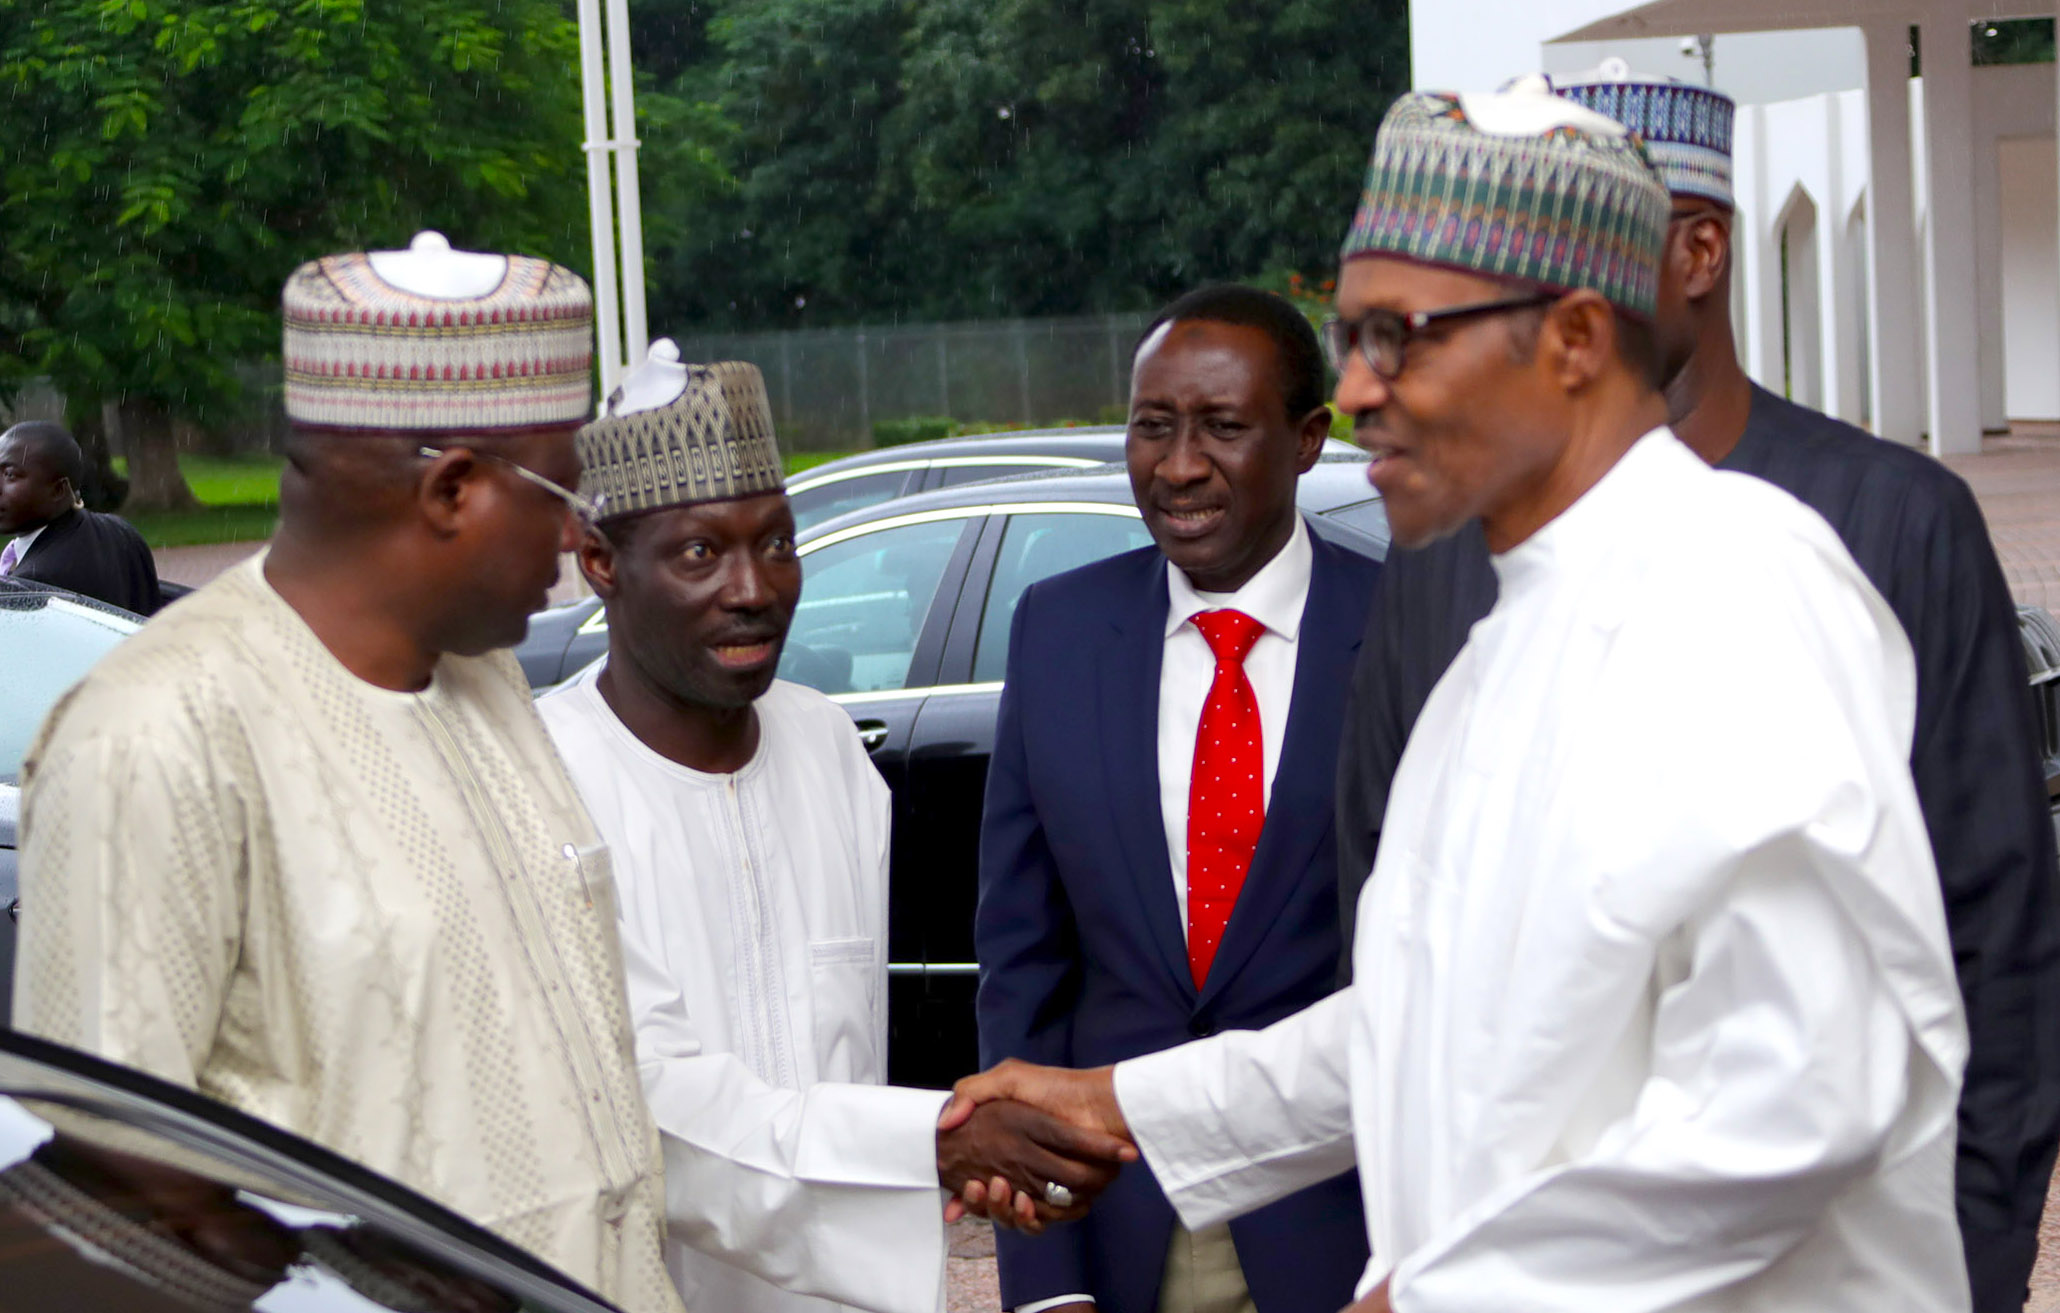 Sallah Message President Buhari Urges The Nation To Rise Above